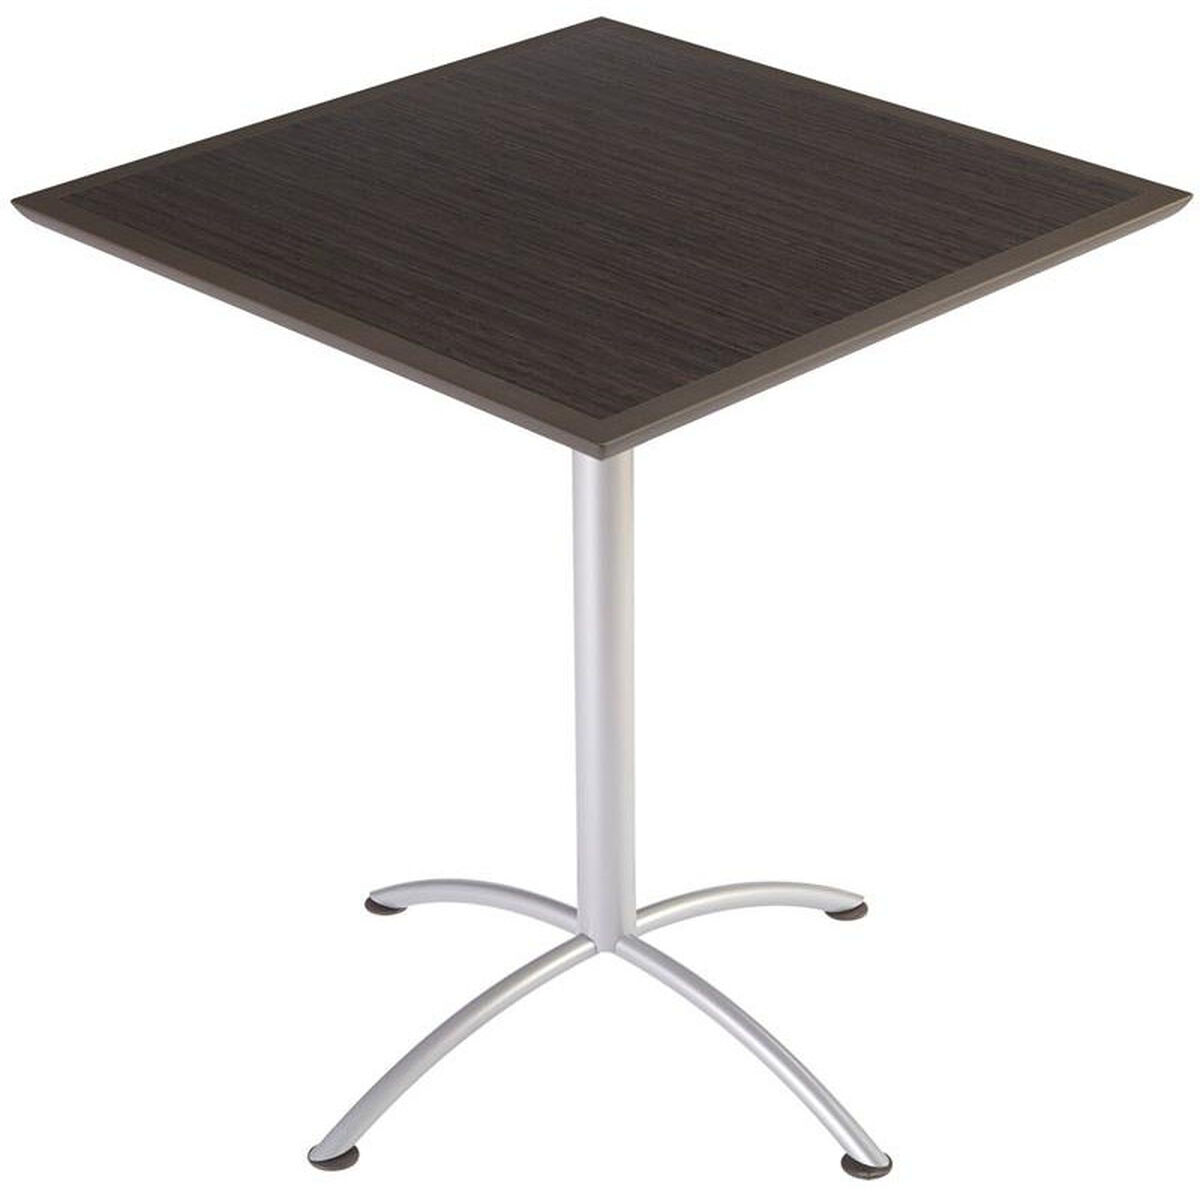 Square Conference Table Laminate RestaurantFurnitureLesscom - 36 conference table